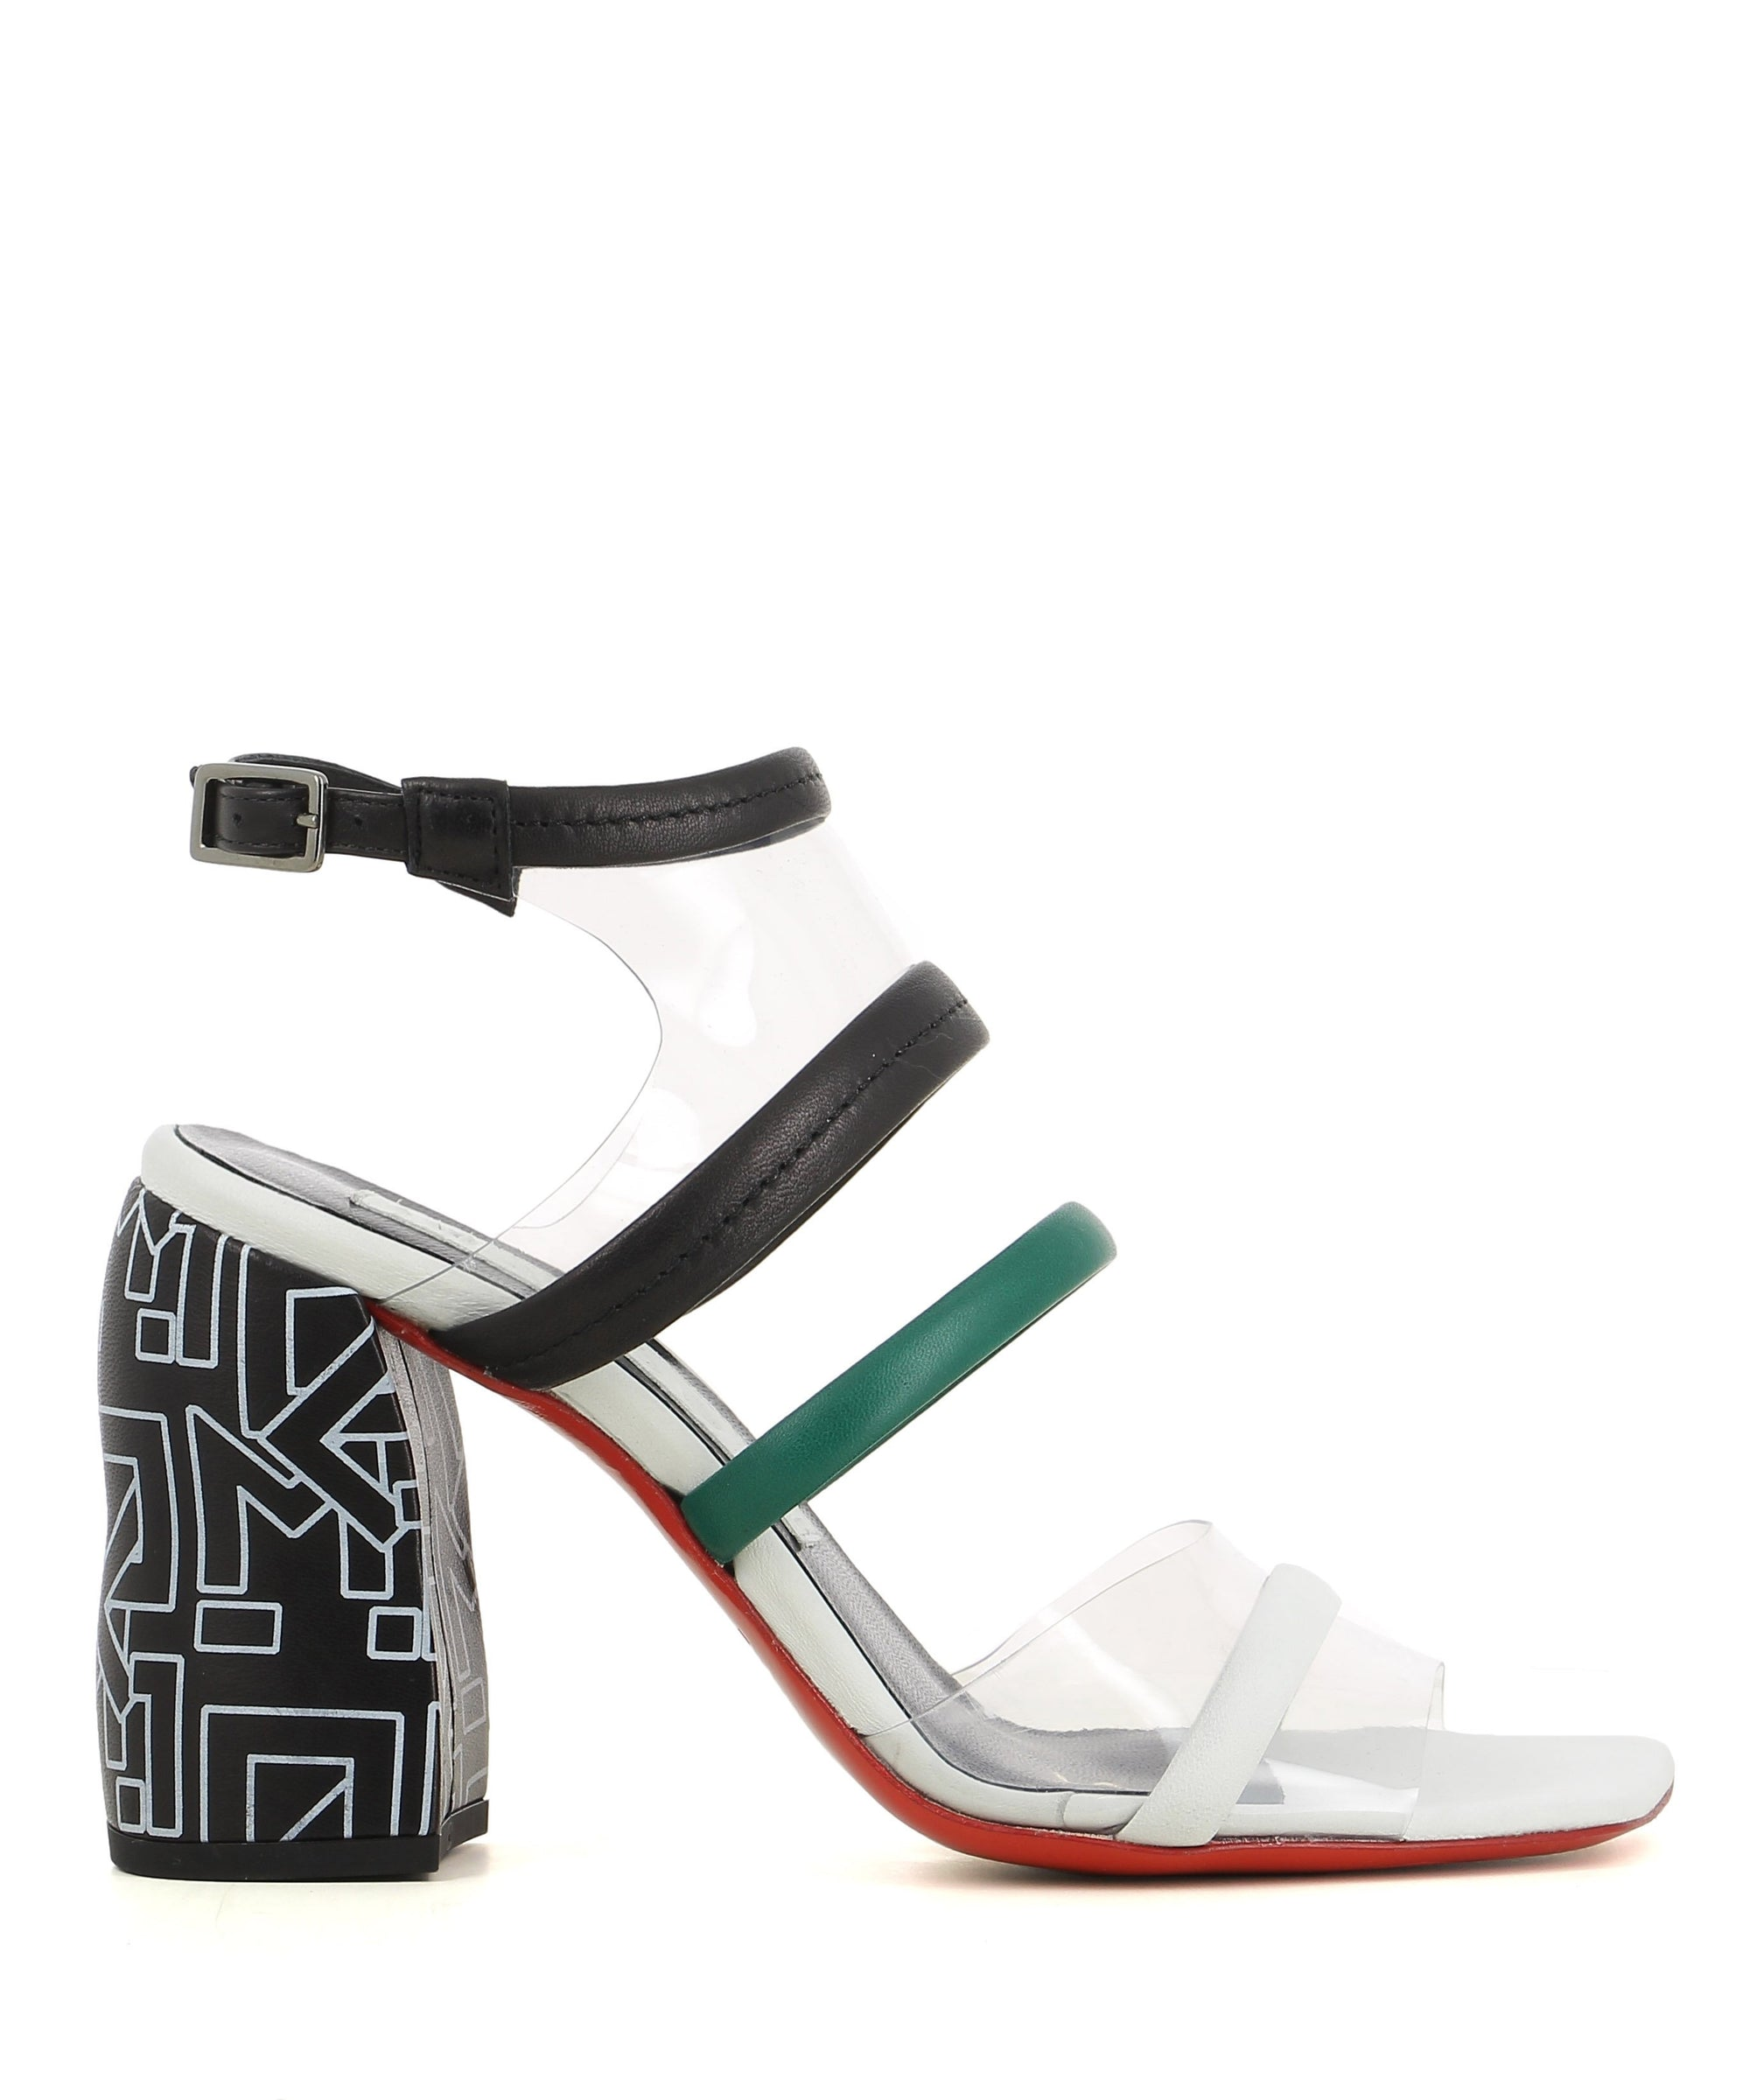 A Italian leather and clear pvc strappy heel with buckle fastening, an illustrated block heel and a square toe.